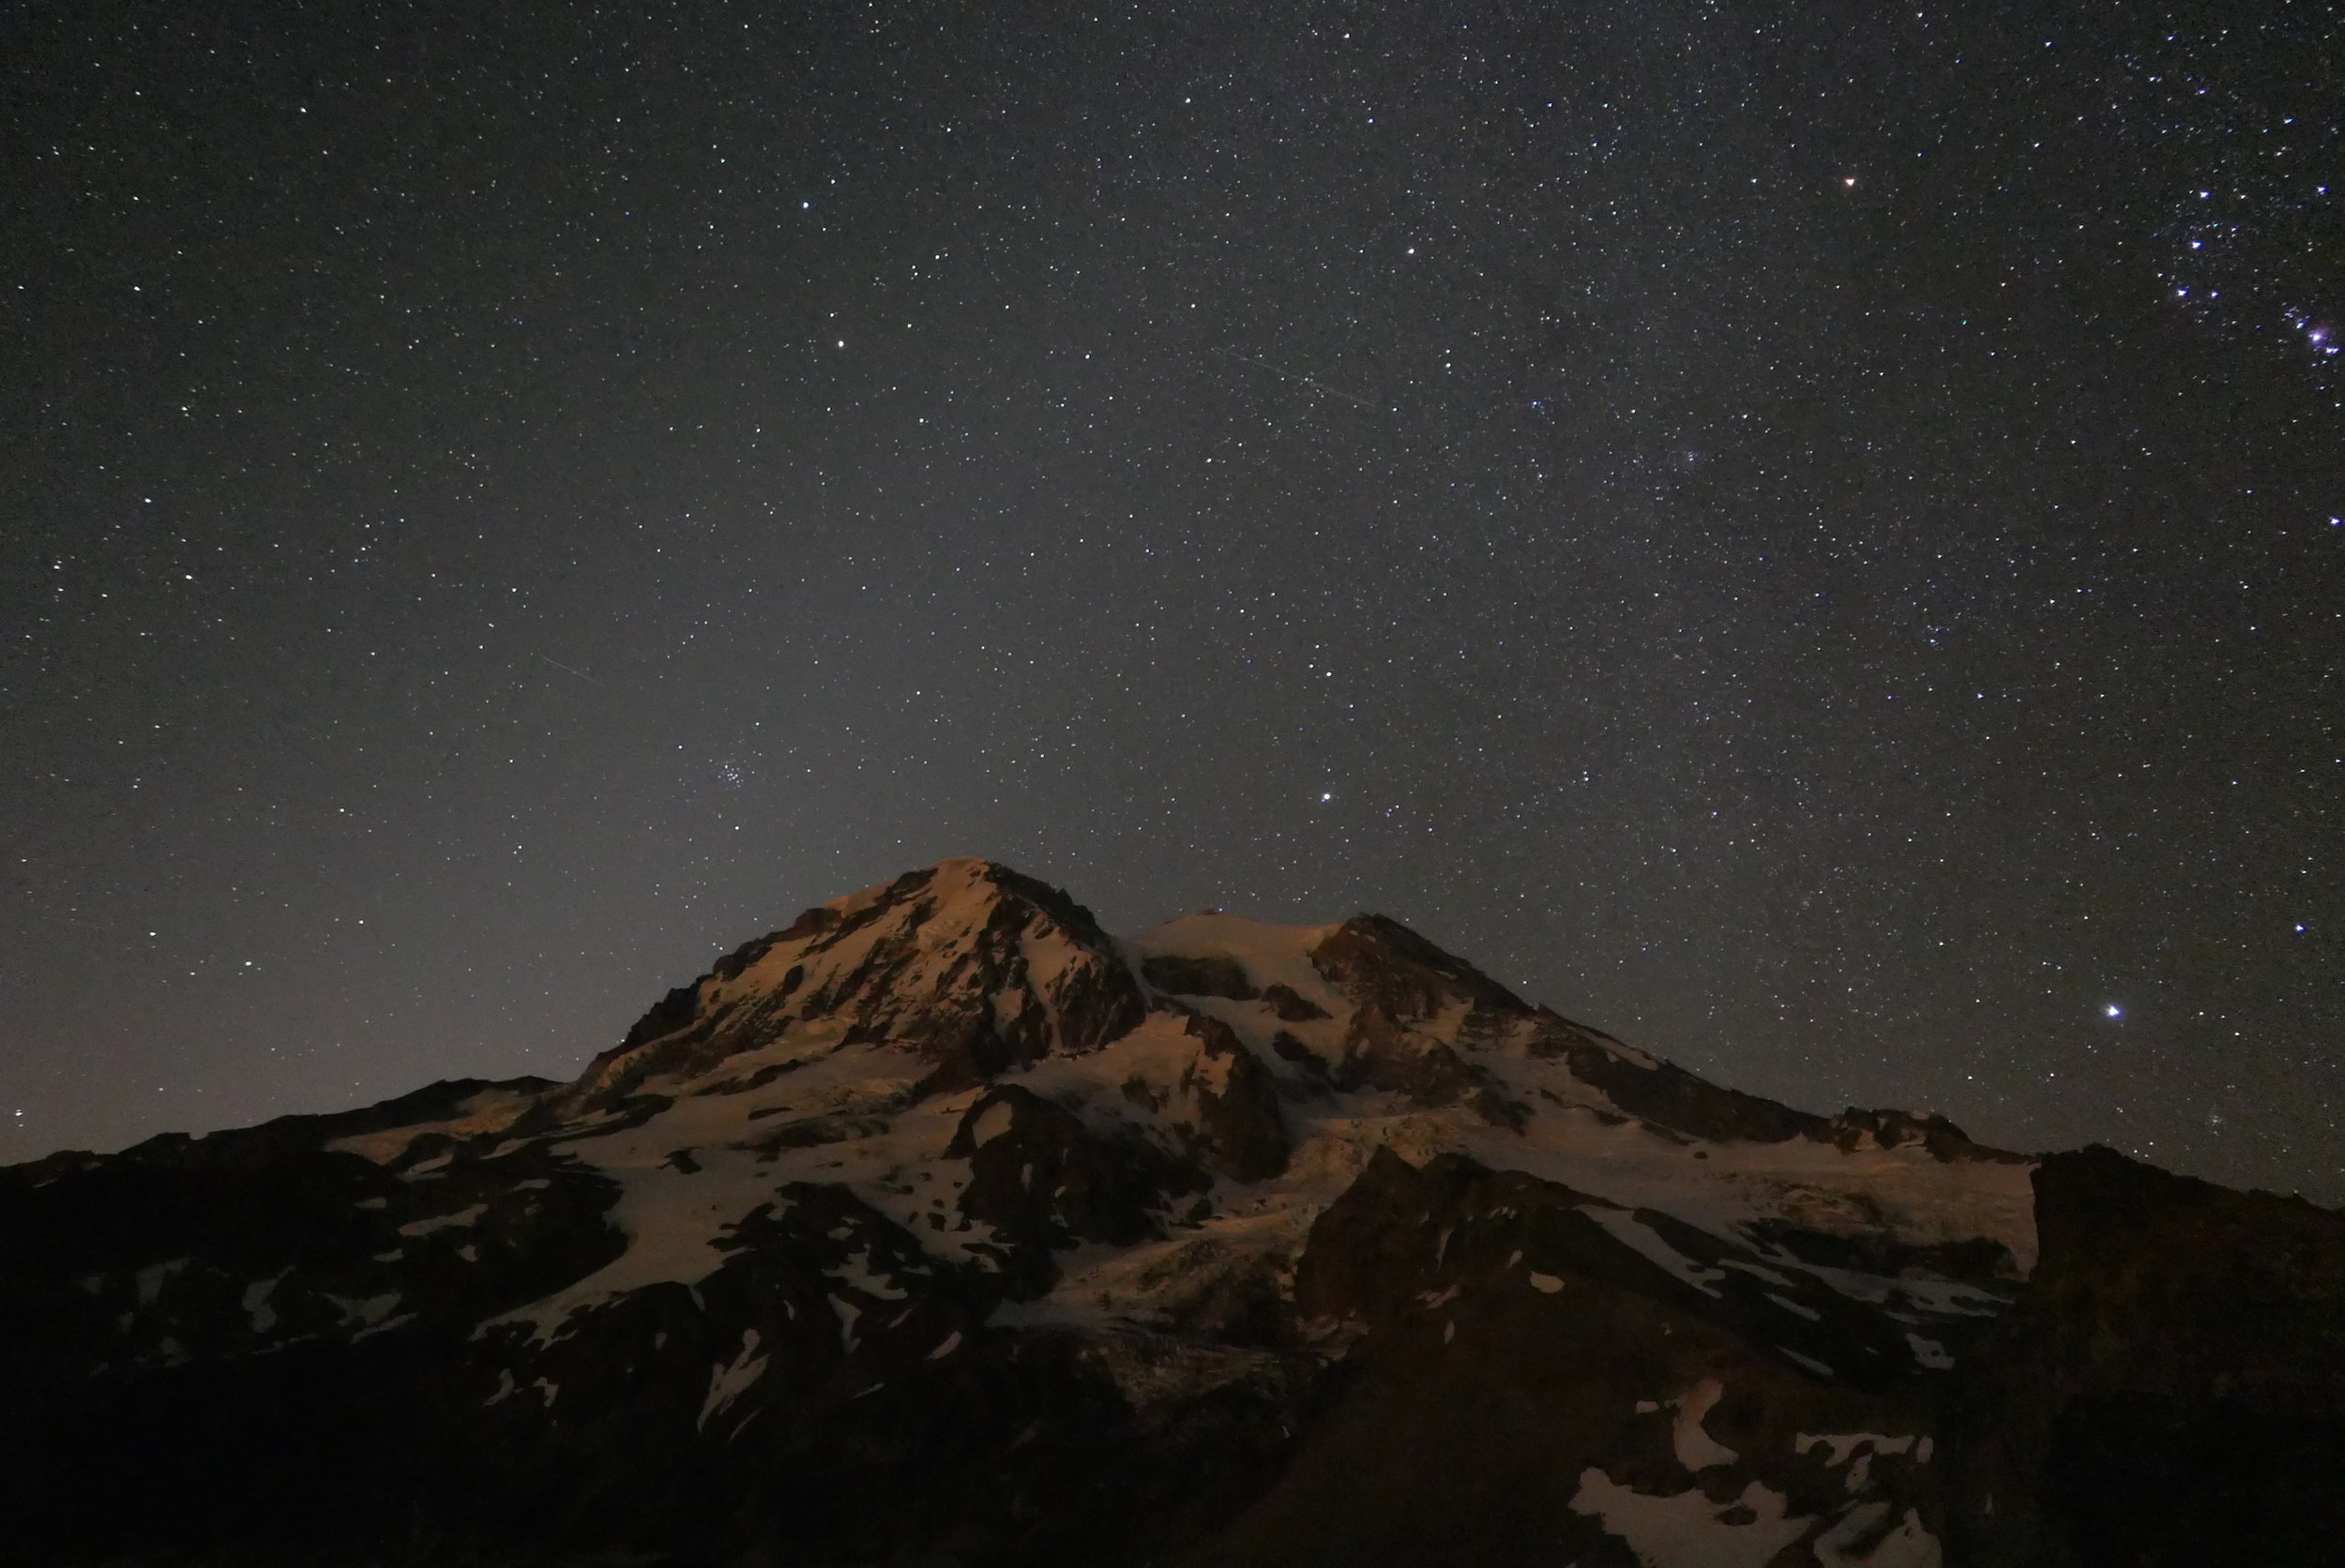 Predawn glow behind the mountain as seen from my bivy spot on The Colonnade, Mt. Rainier